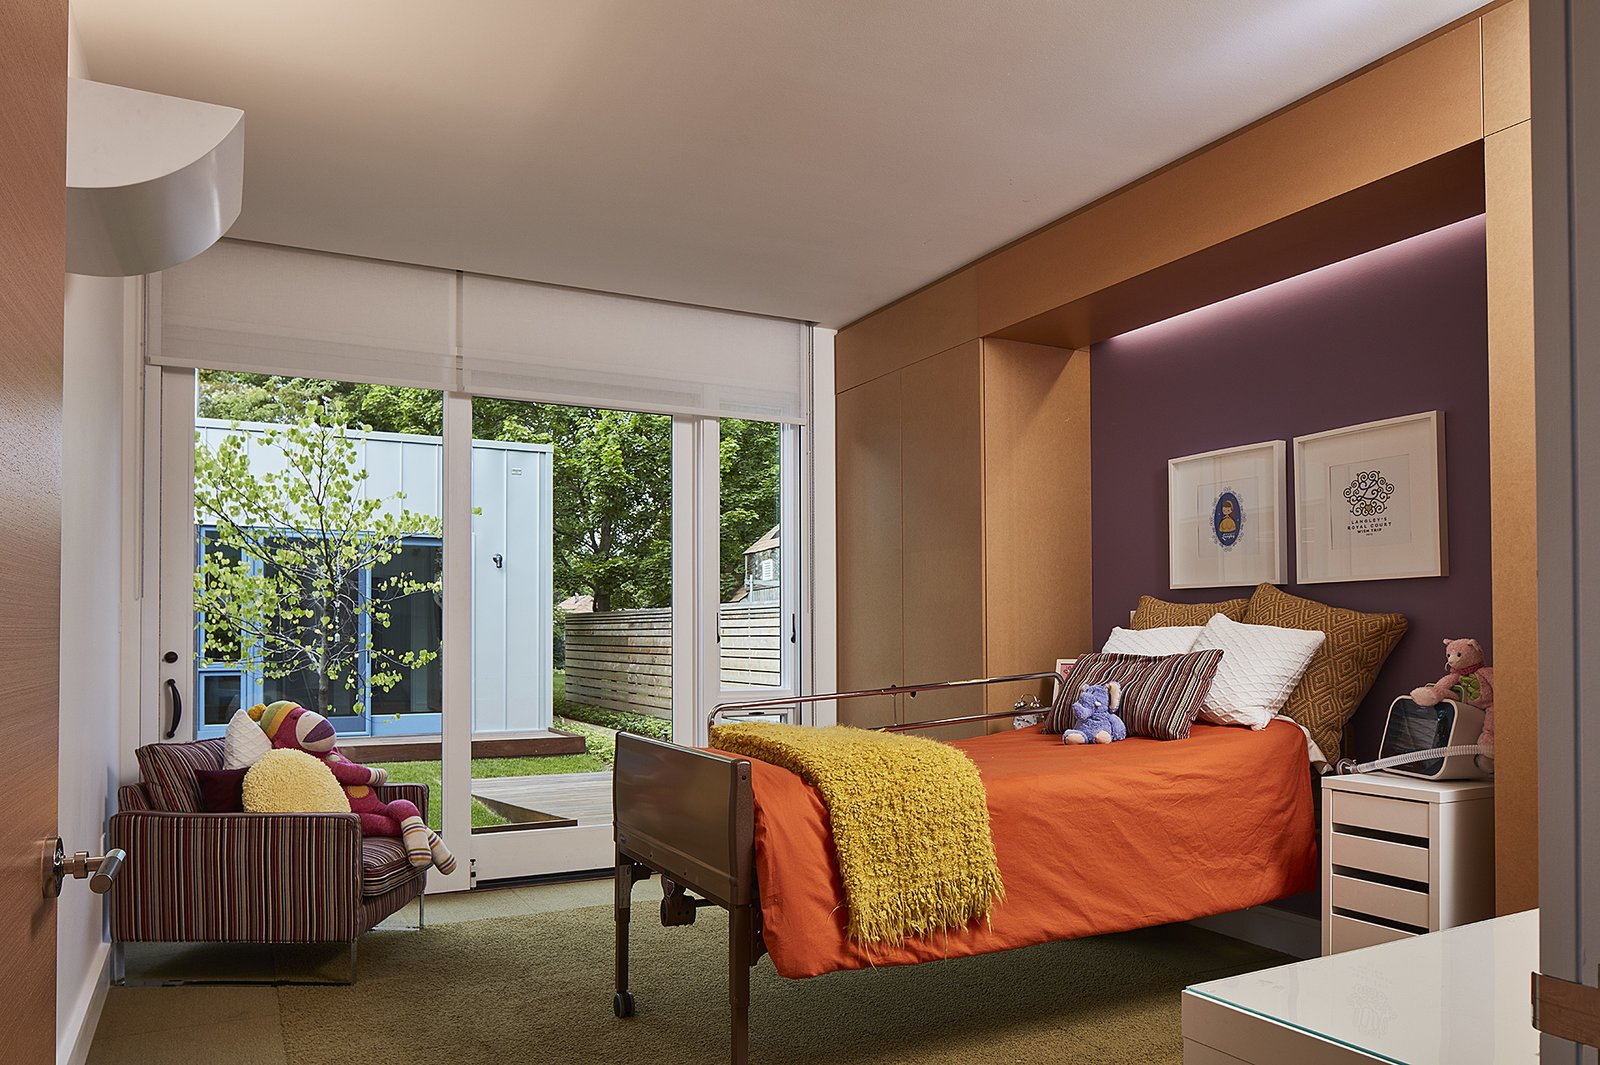 The children's bedrooms have access to their own shared courtyard. Tagged: Bedroom, Bed, Night Stands, and Chair.  Photo 8 of 8 in An Accessible Home Promotes a Lifetime of Well-Being For the Whole Family